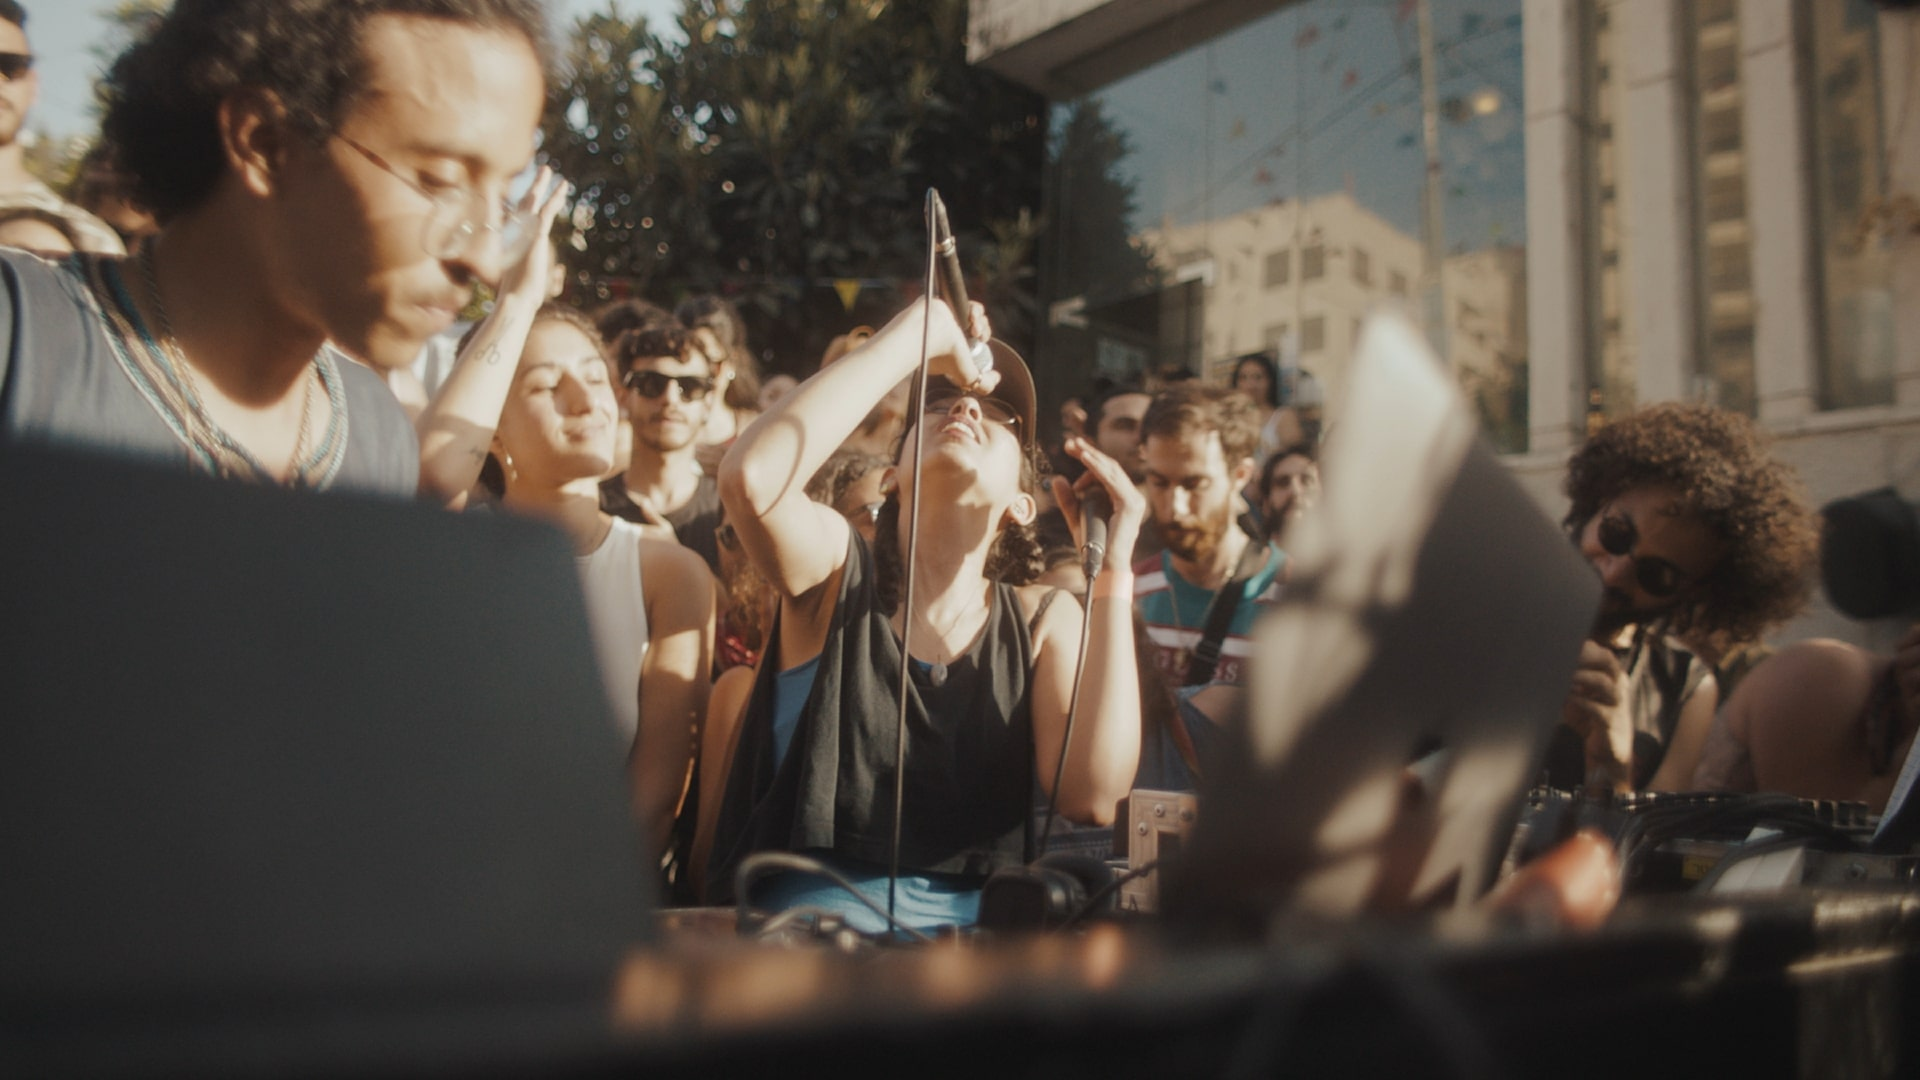 A still of Sama' from  Palestine Underground  at Boiler Room show in Ramallah. Credit to Boiler Room for all images.